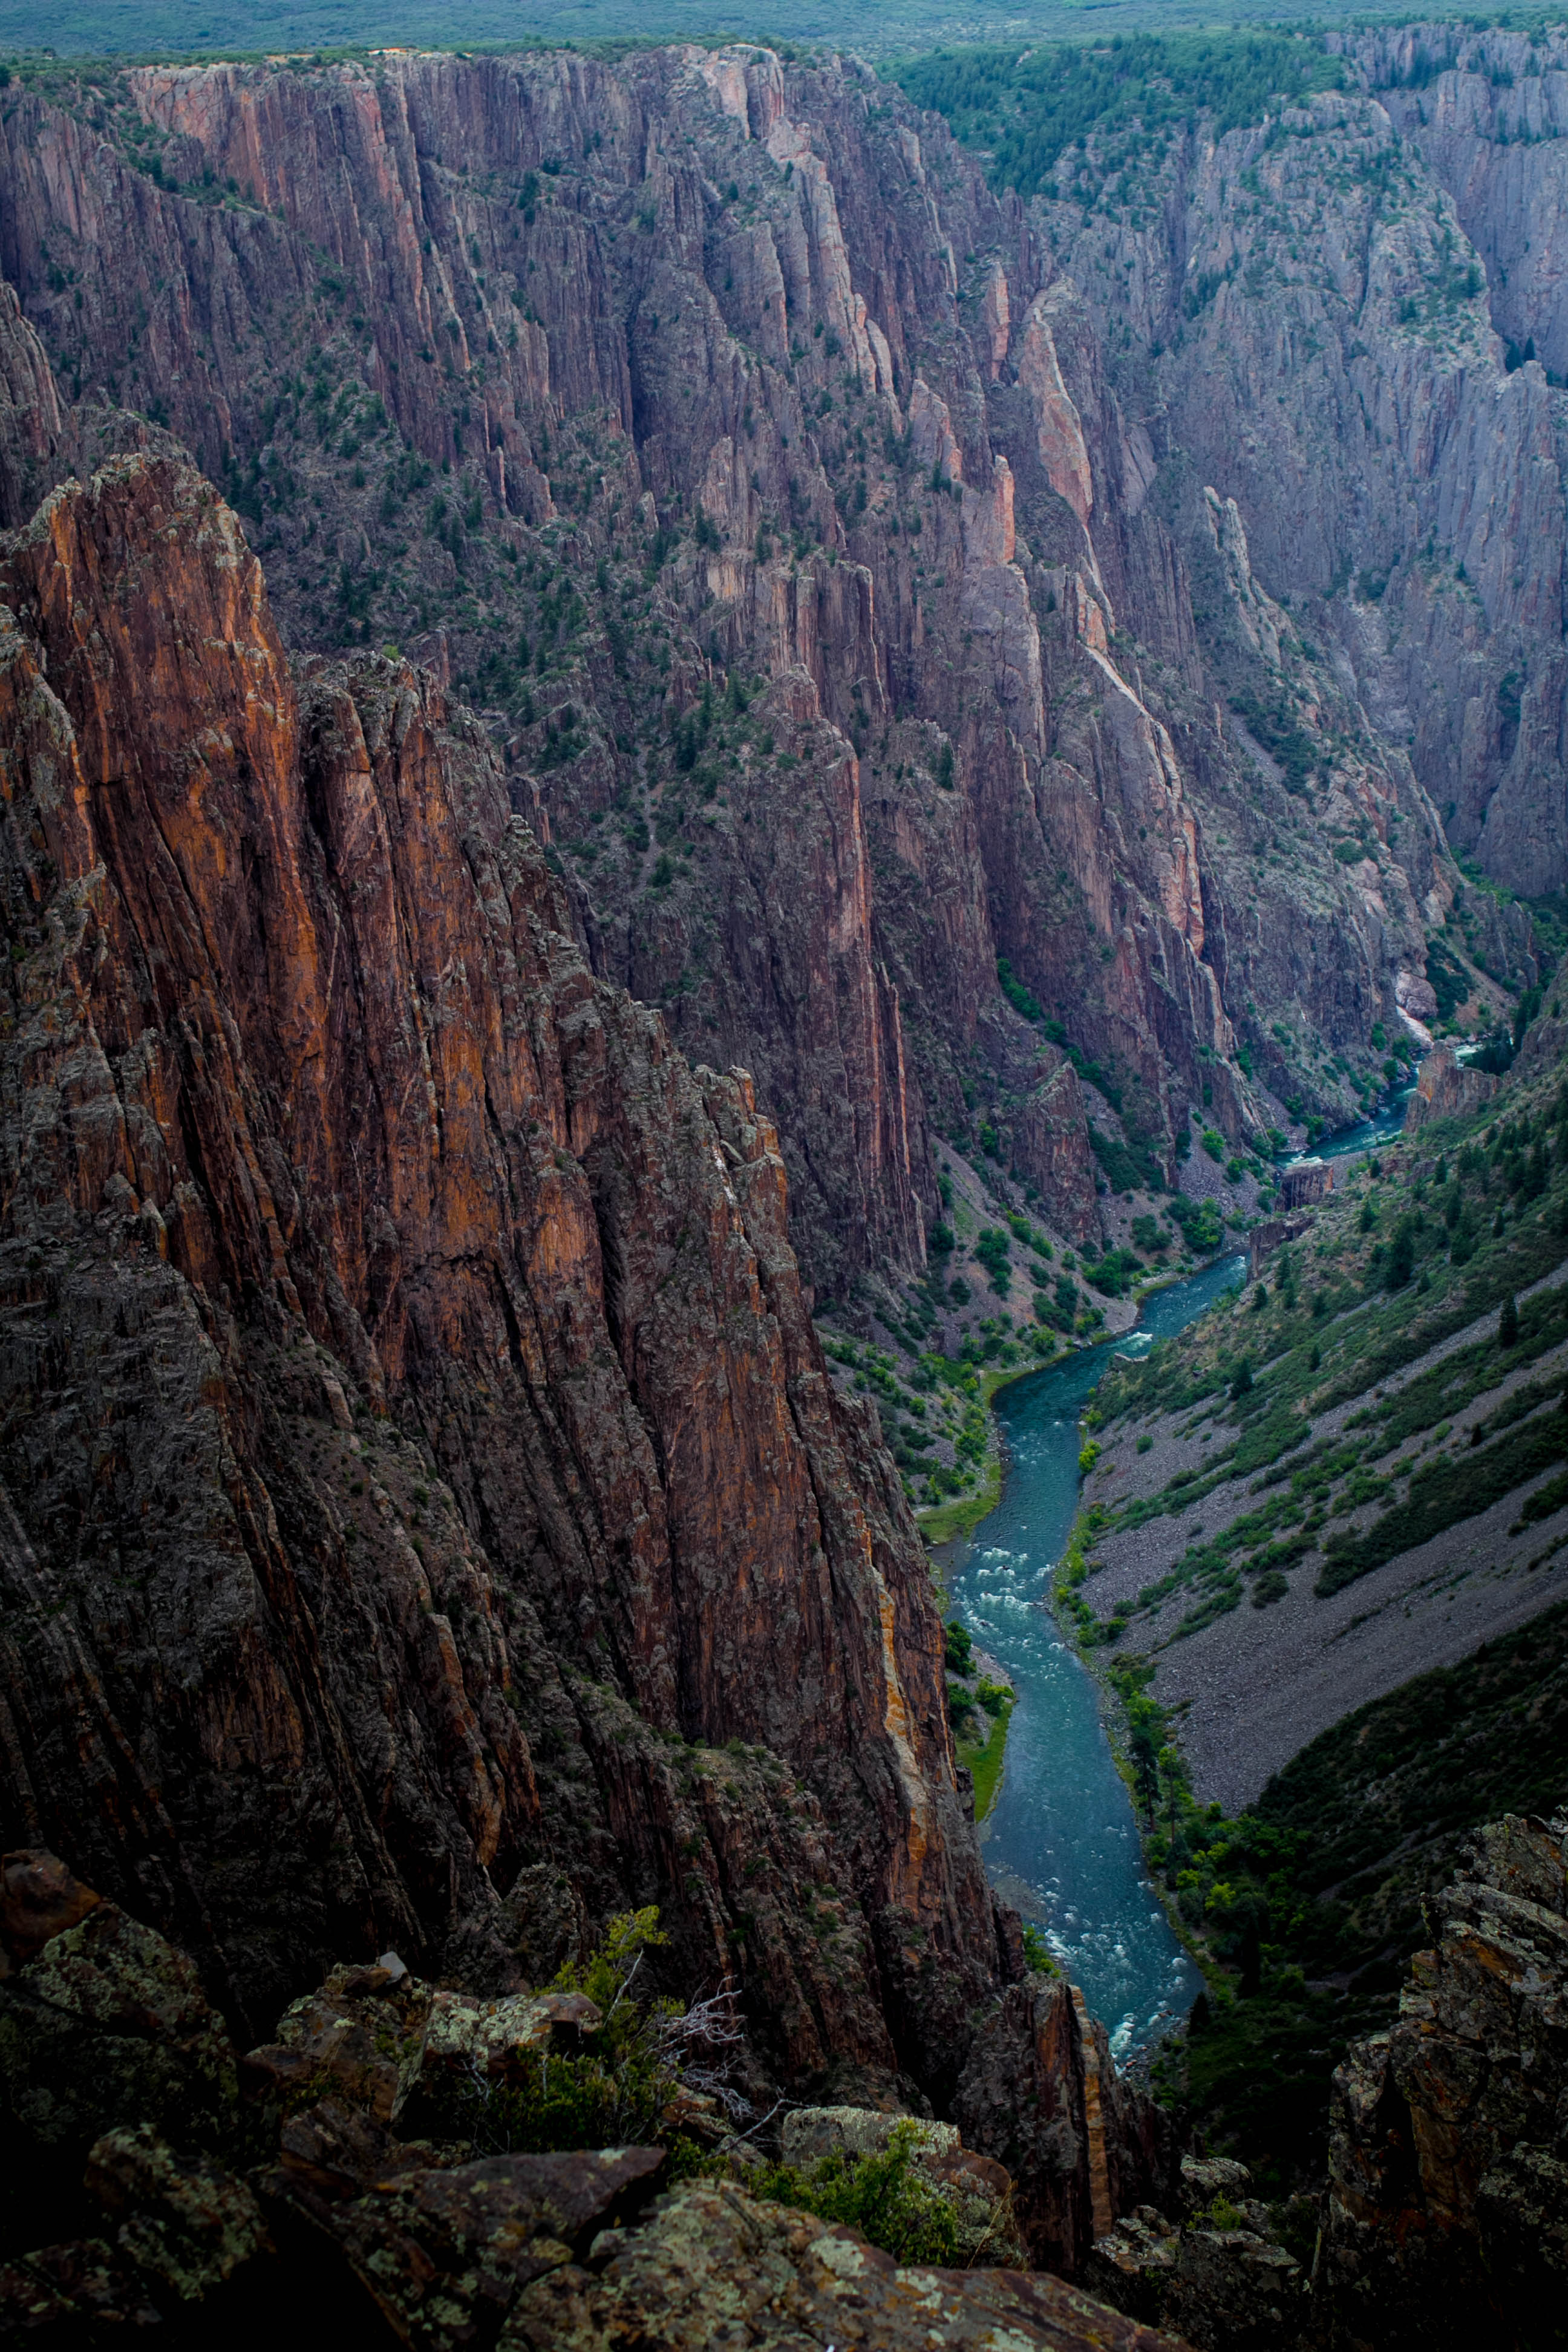 Black Canyon of the Gunnison one of the steepest canyons OC